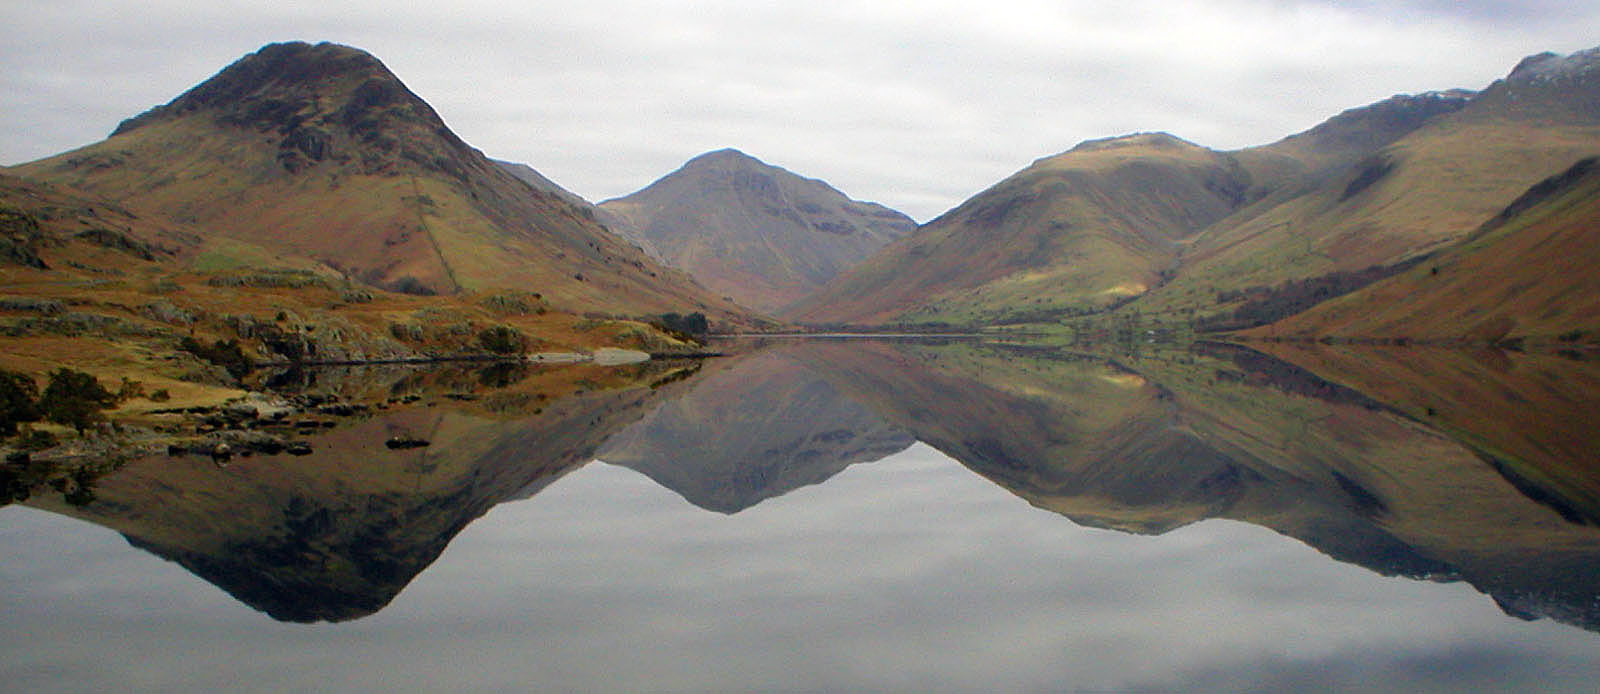 Reflection in lake